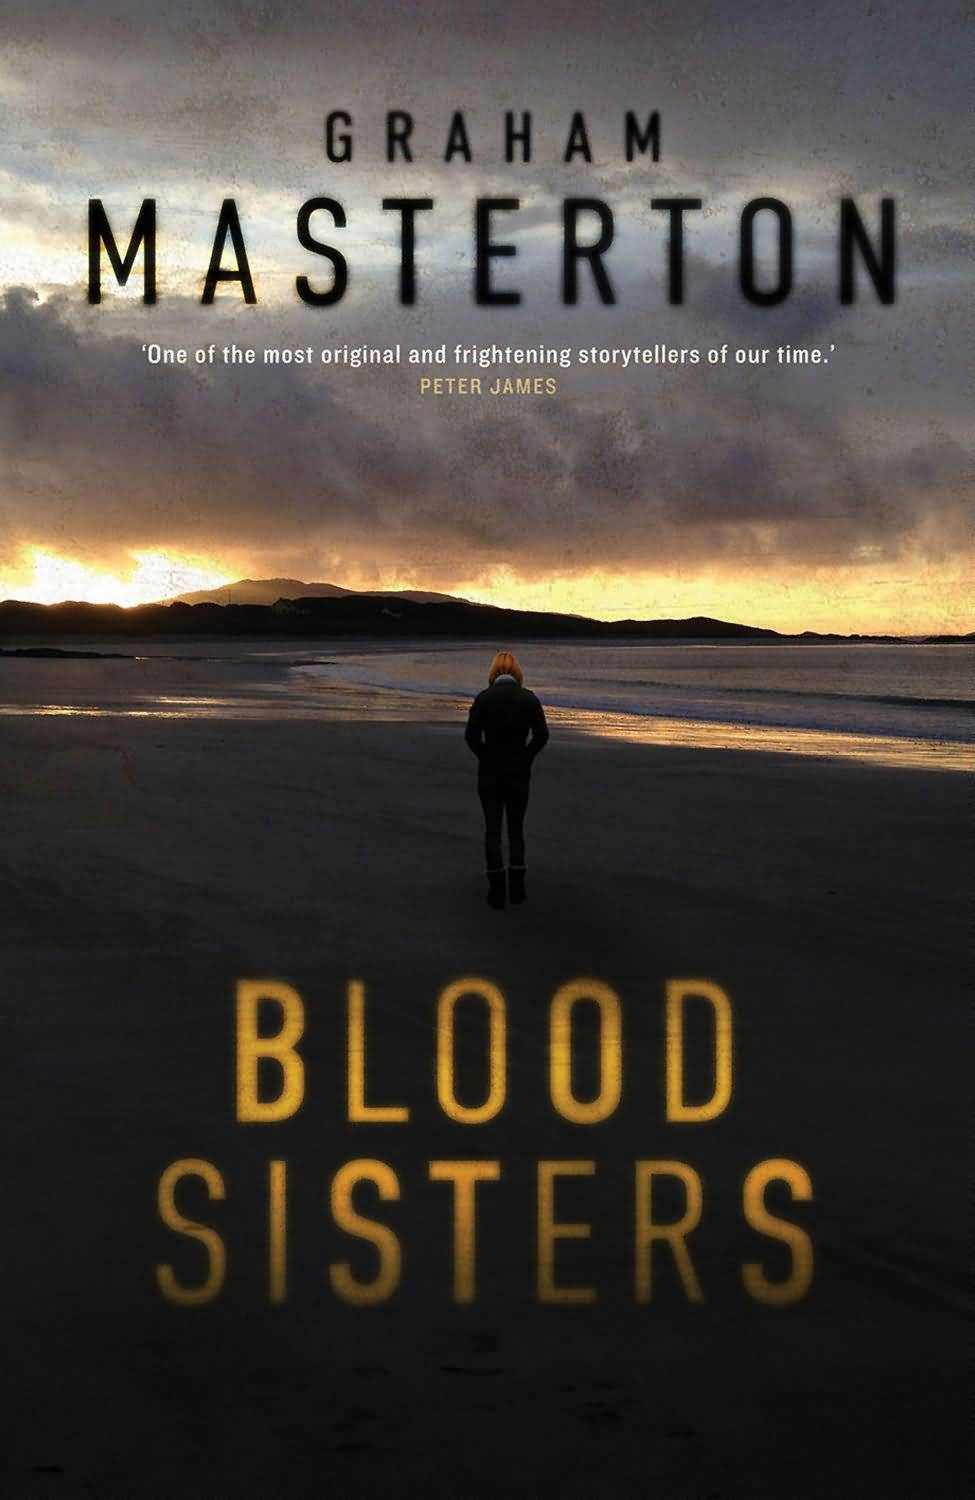 blood sisters graham masterton cover